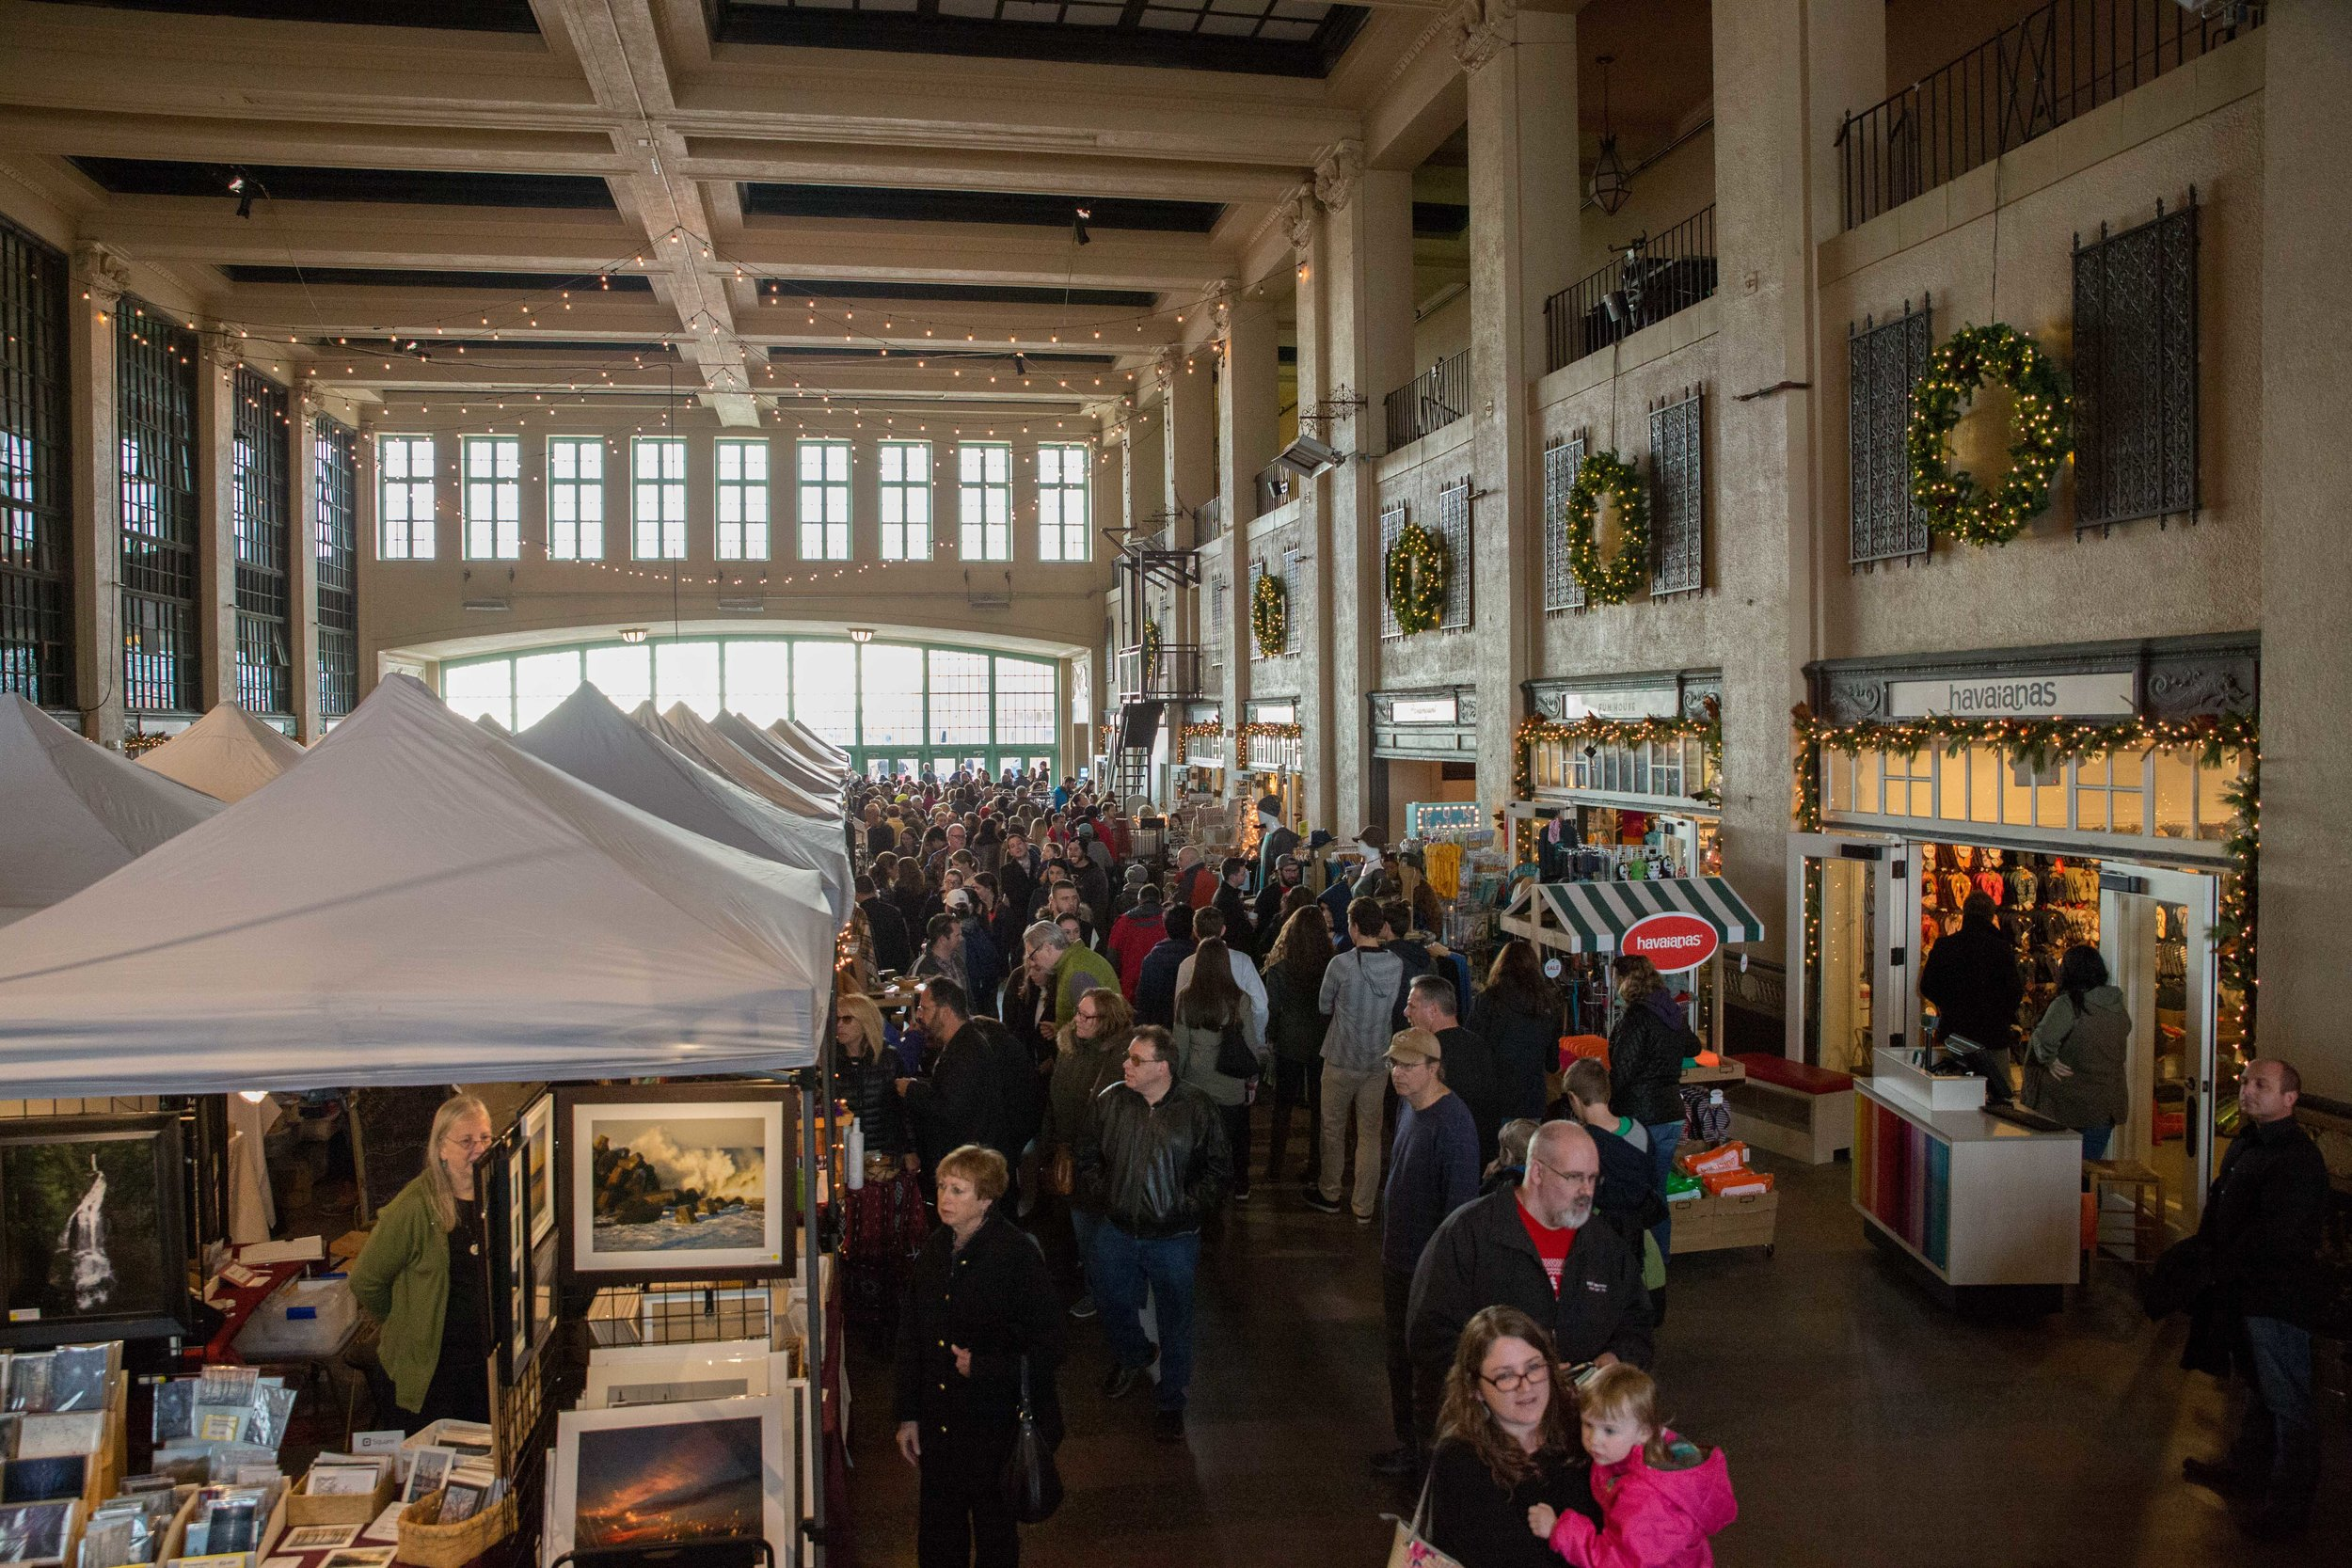 Asbury Park Holiday Bazaar photo by Christian Boho.jpg